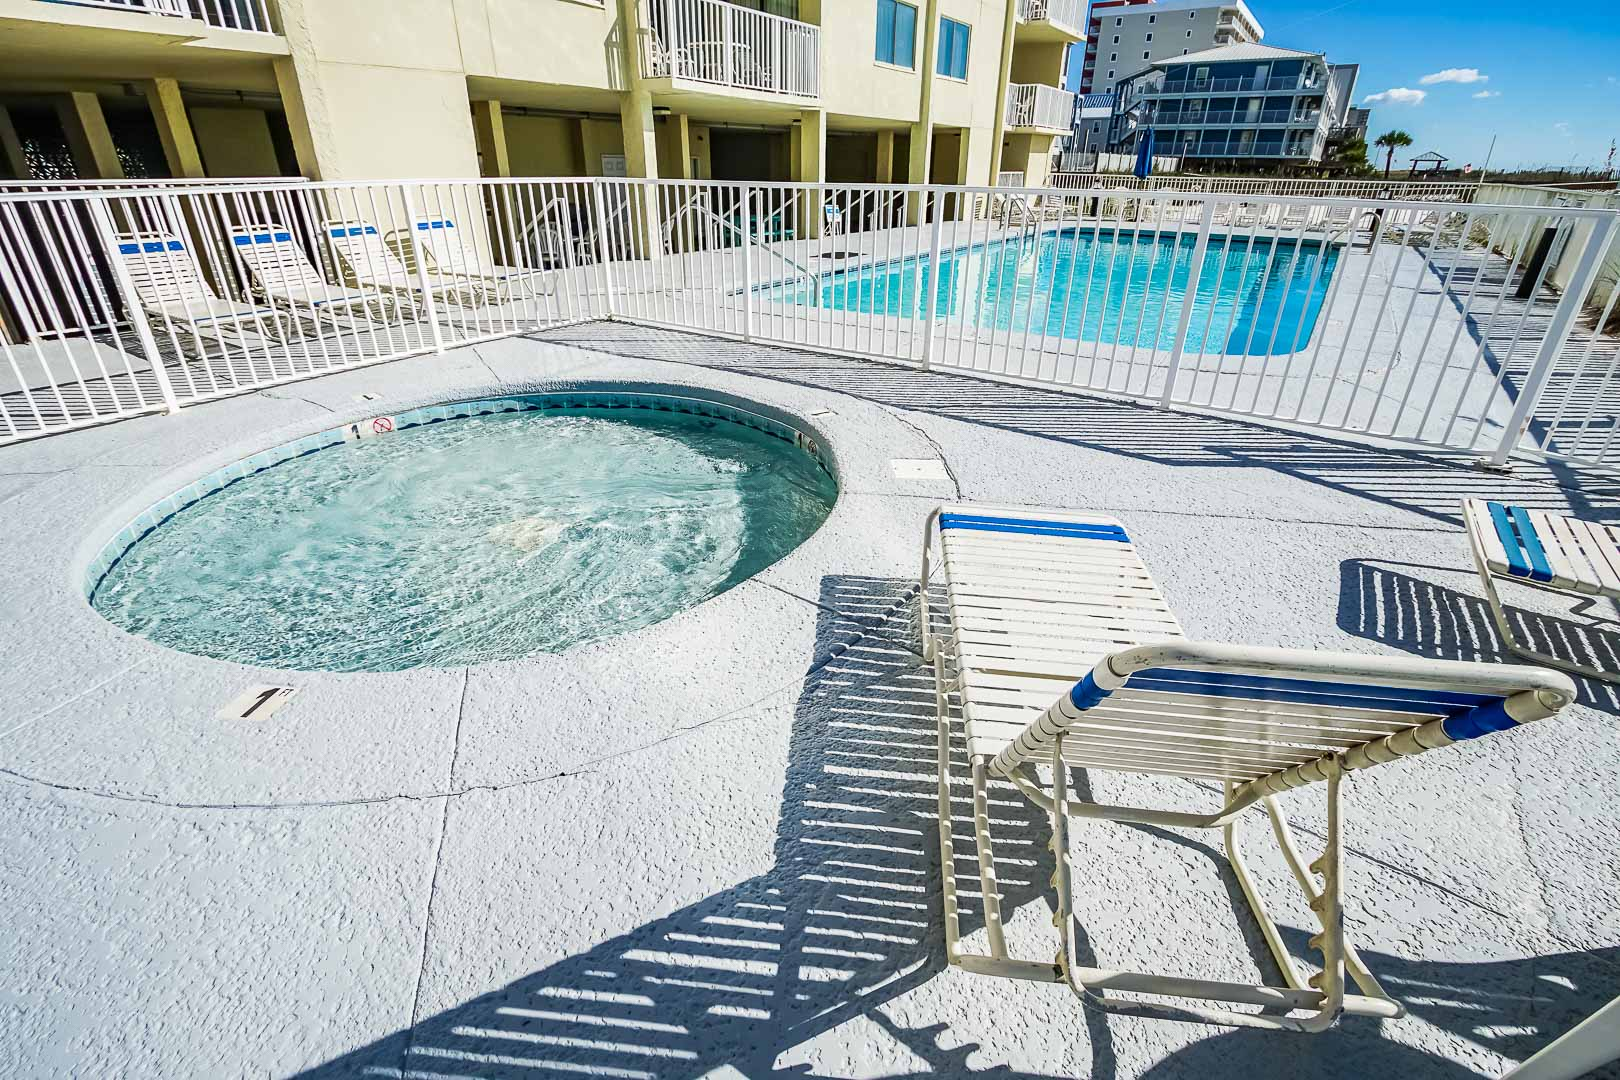 A peaceful outdoor swimming pool and Jacuzzi at VRI's Shoreline Towers in Gulf Shores, Alabama.